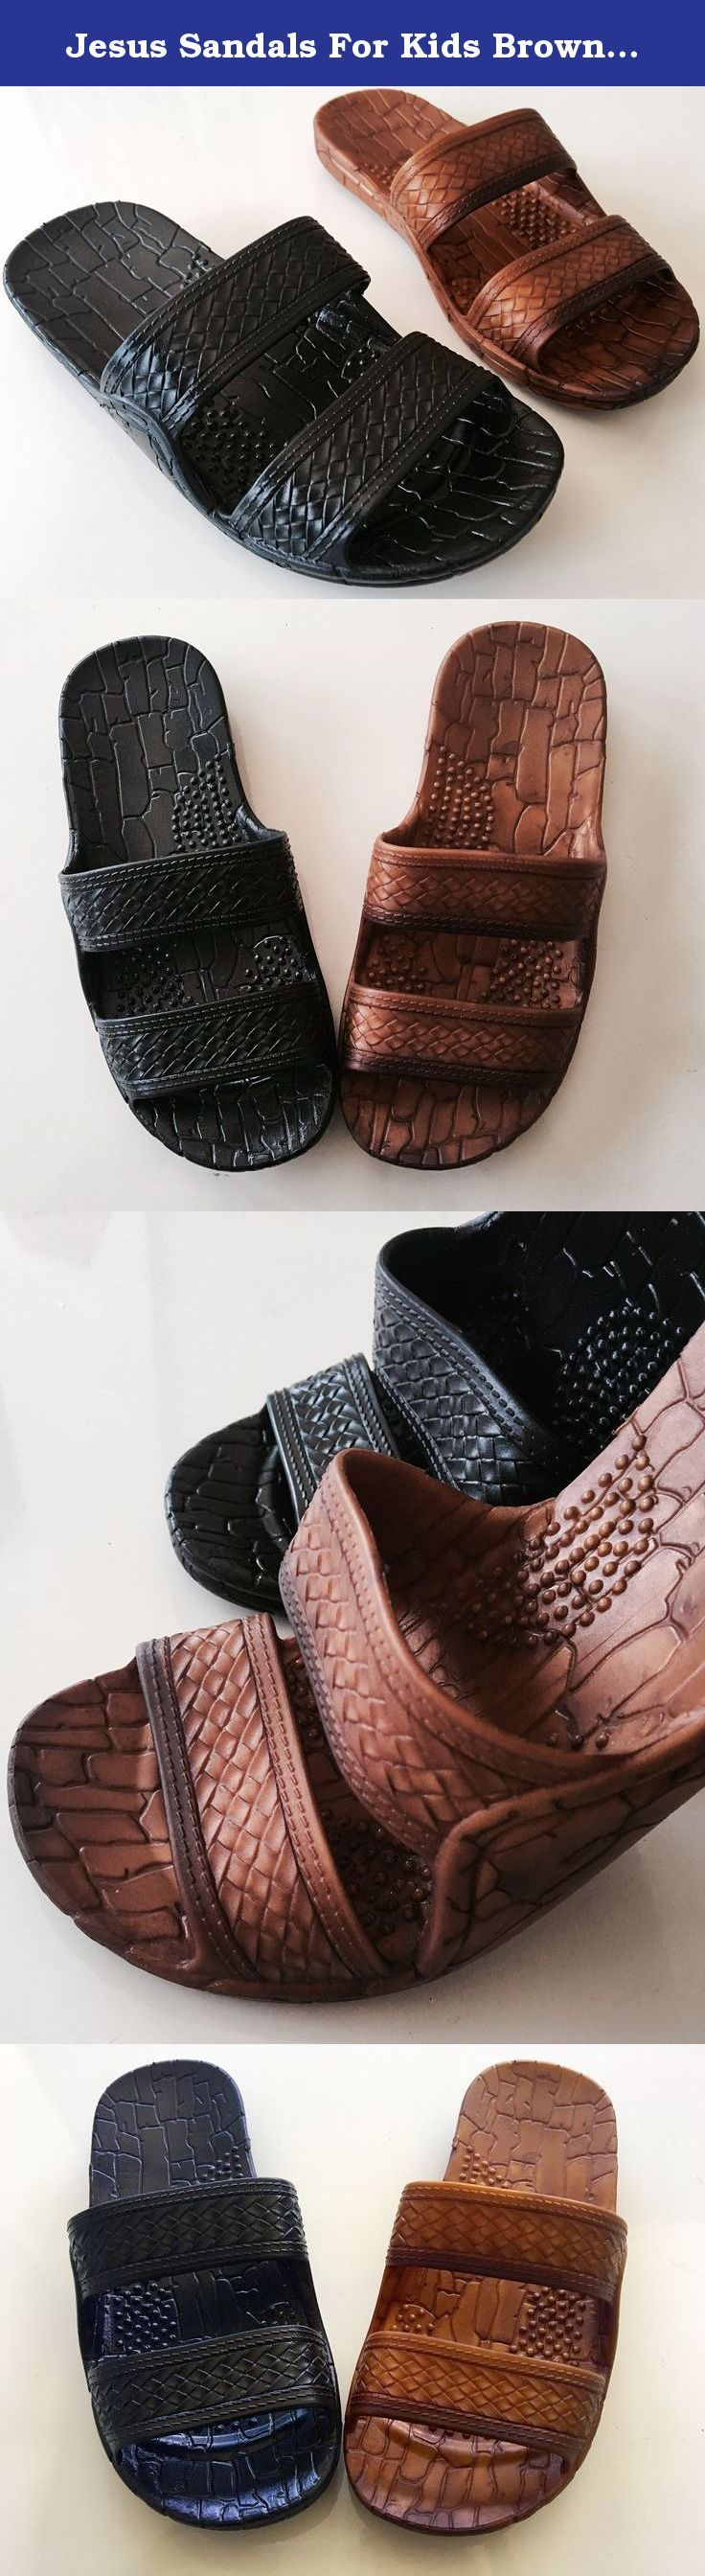 """Jesus Sandals For Kids Brown & Black. Kids finally have the Perfect Jandals for active summer days. these Jandals are Genuine Sandals featuring 2 flexible straps. A Hawaiian textured design. And the bottom has added traction and contoured footbed that keeps his foot secure and comfy all day. Brown Slippers OR Black Flip-flops for beach, pool or river time. SIZE 1 = 7 3/4"""" x 2 3/4"""" SIZE 2 = 7 7/8"""" x 2 7/8"""" SIZE 3 = 8"""" x 3"""" SIZE 4 = 8 1/2"""" x 3 1/8""""."""